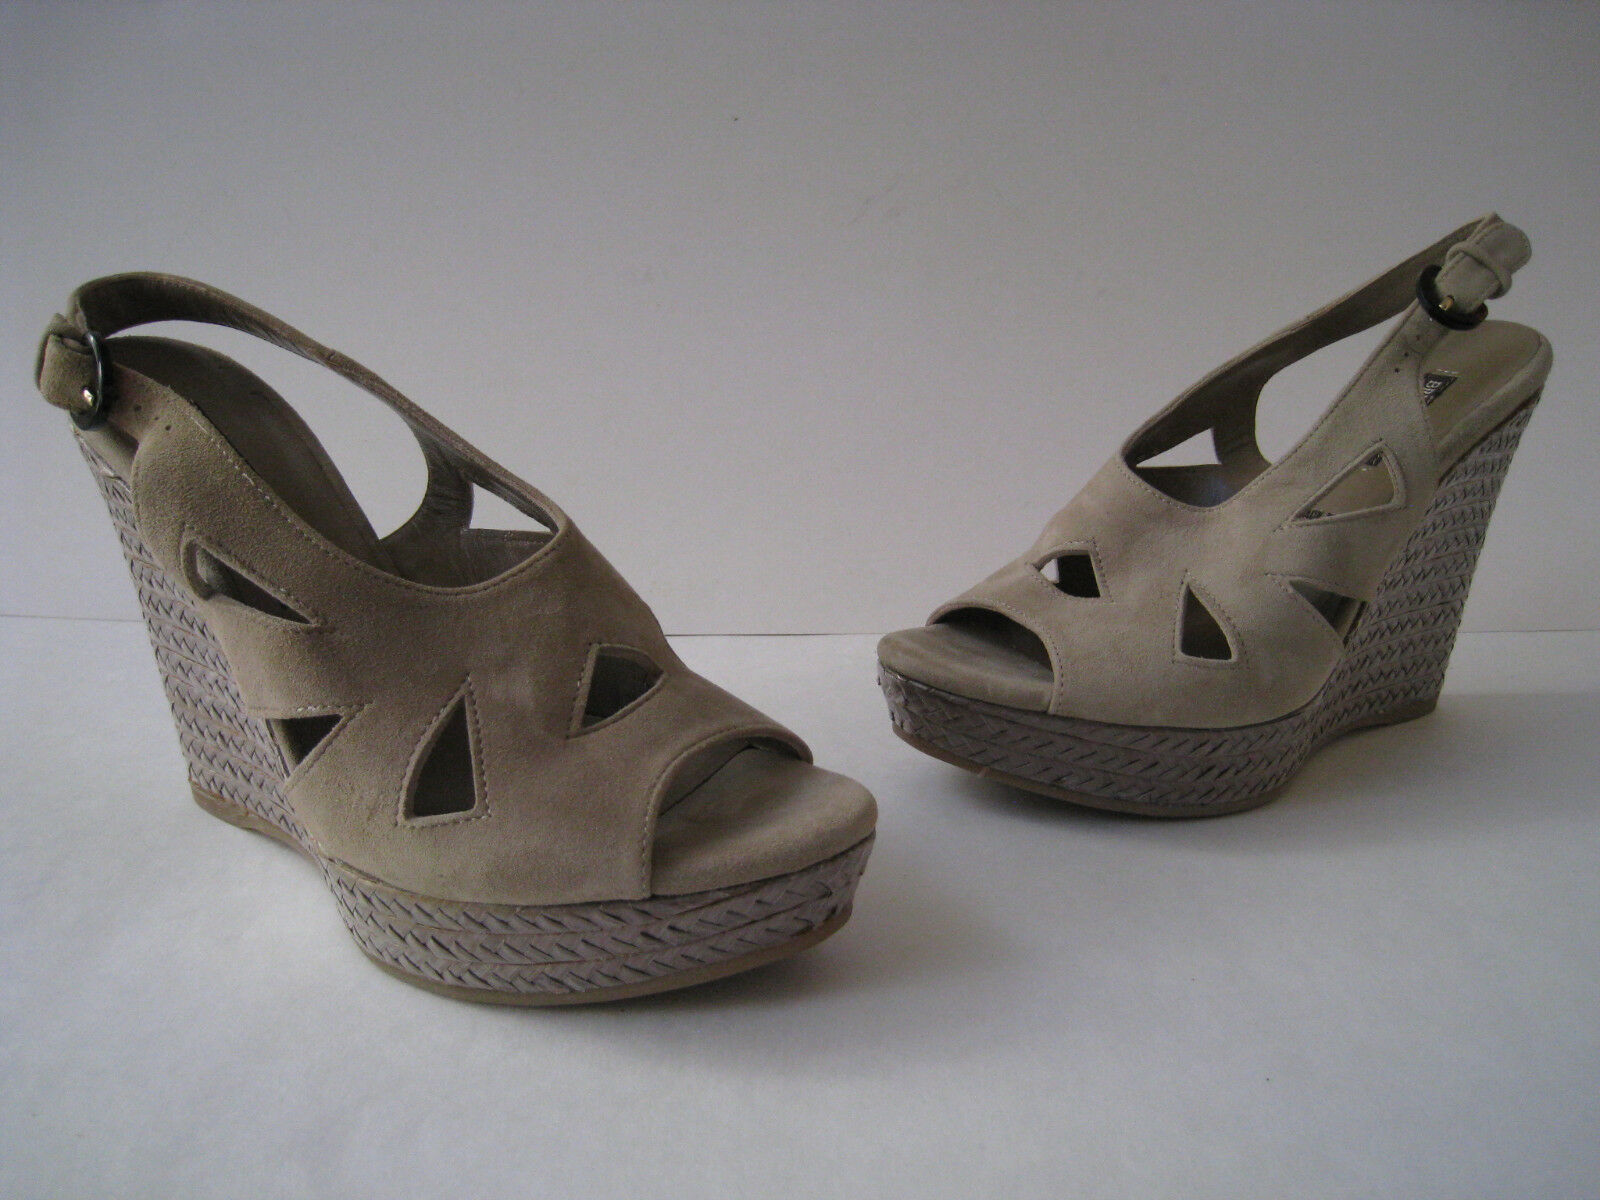 BRUNO MAGLI WEDGE SANDAL 5  HEEL femmes Taille US 8.5 EUR 39.5 HOT MADE IN ITALY